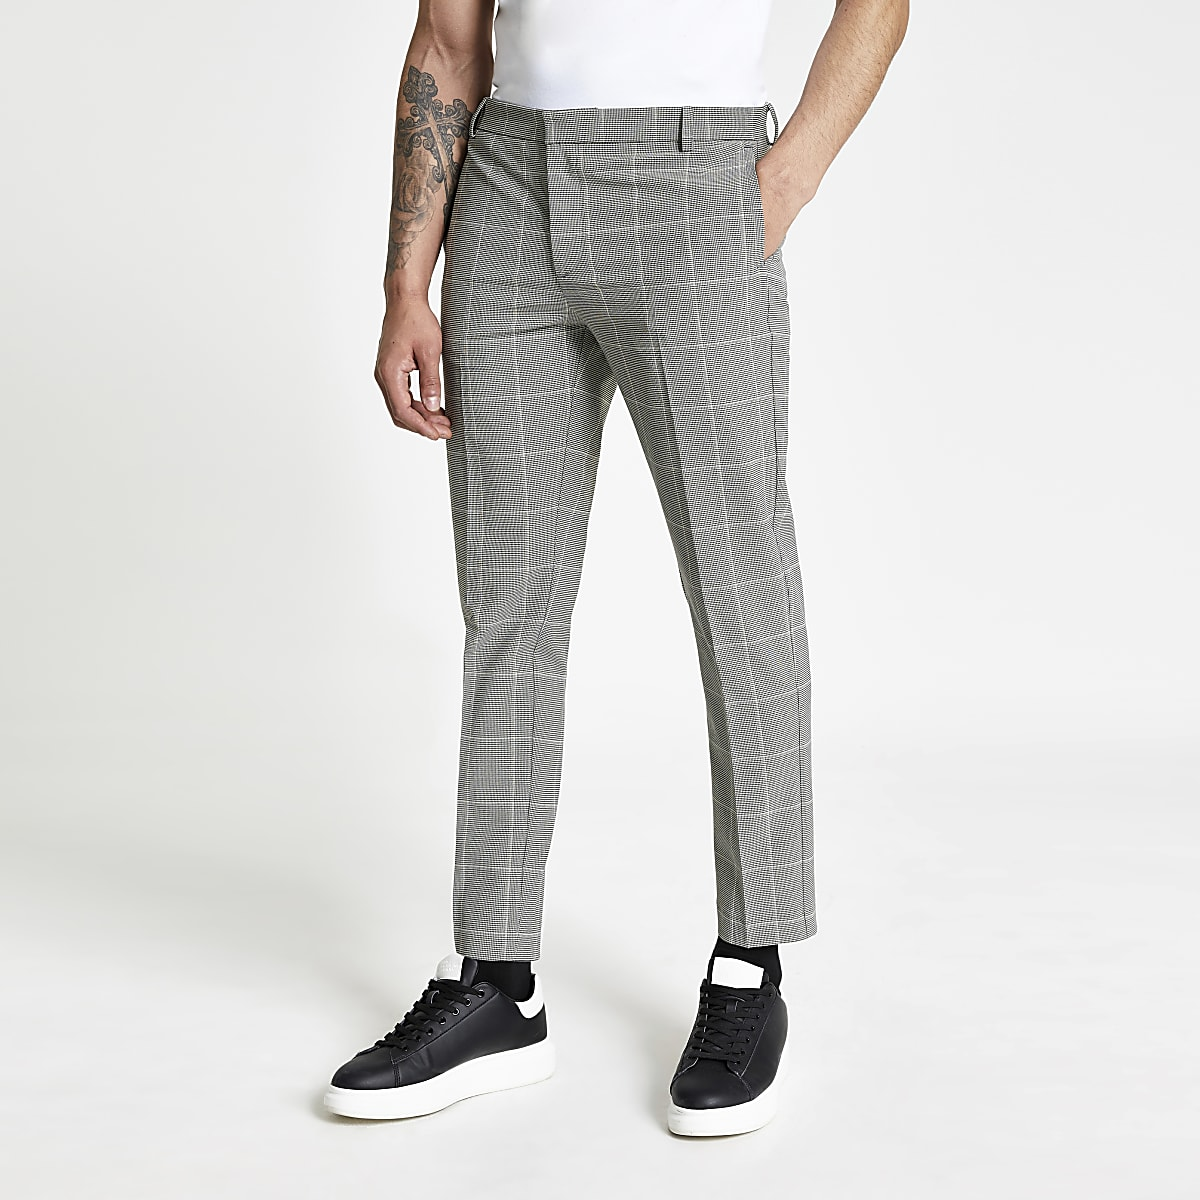 Monochrome check super skinny trousers